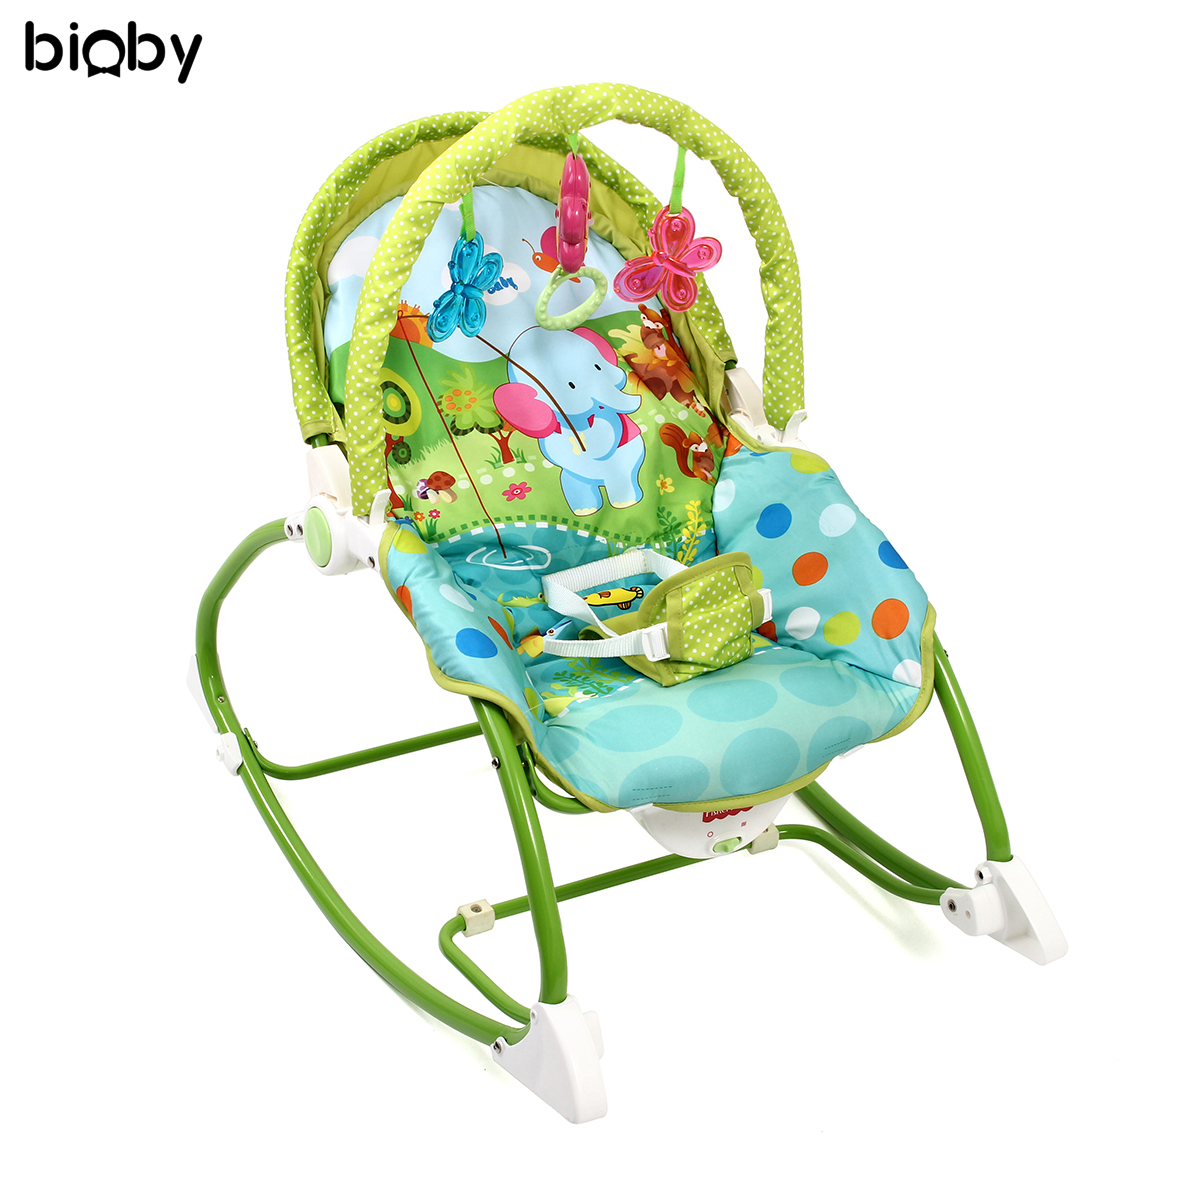 Qualified Soft Leather Multifunctional Baby Rocking Chair Baby Chair Jumpers Chair Baby Mother & Kids Baby Furniture